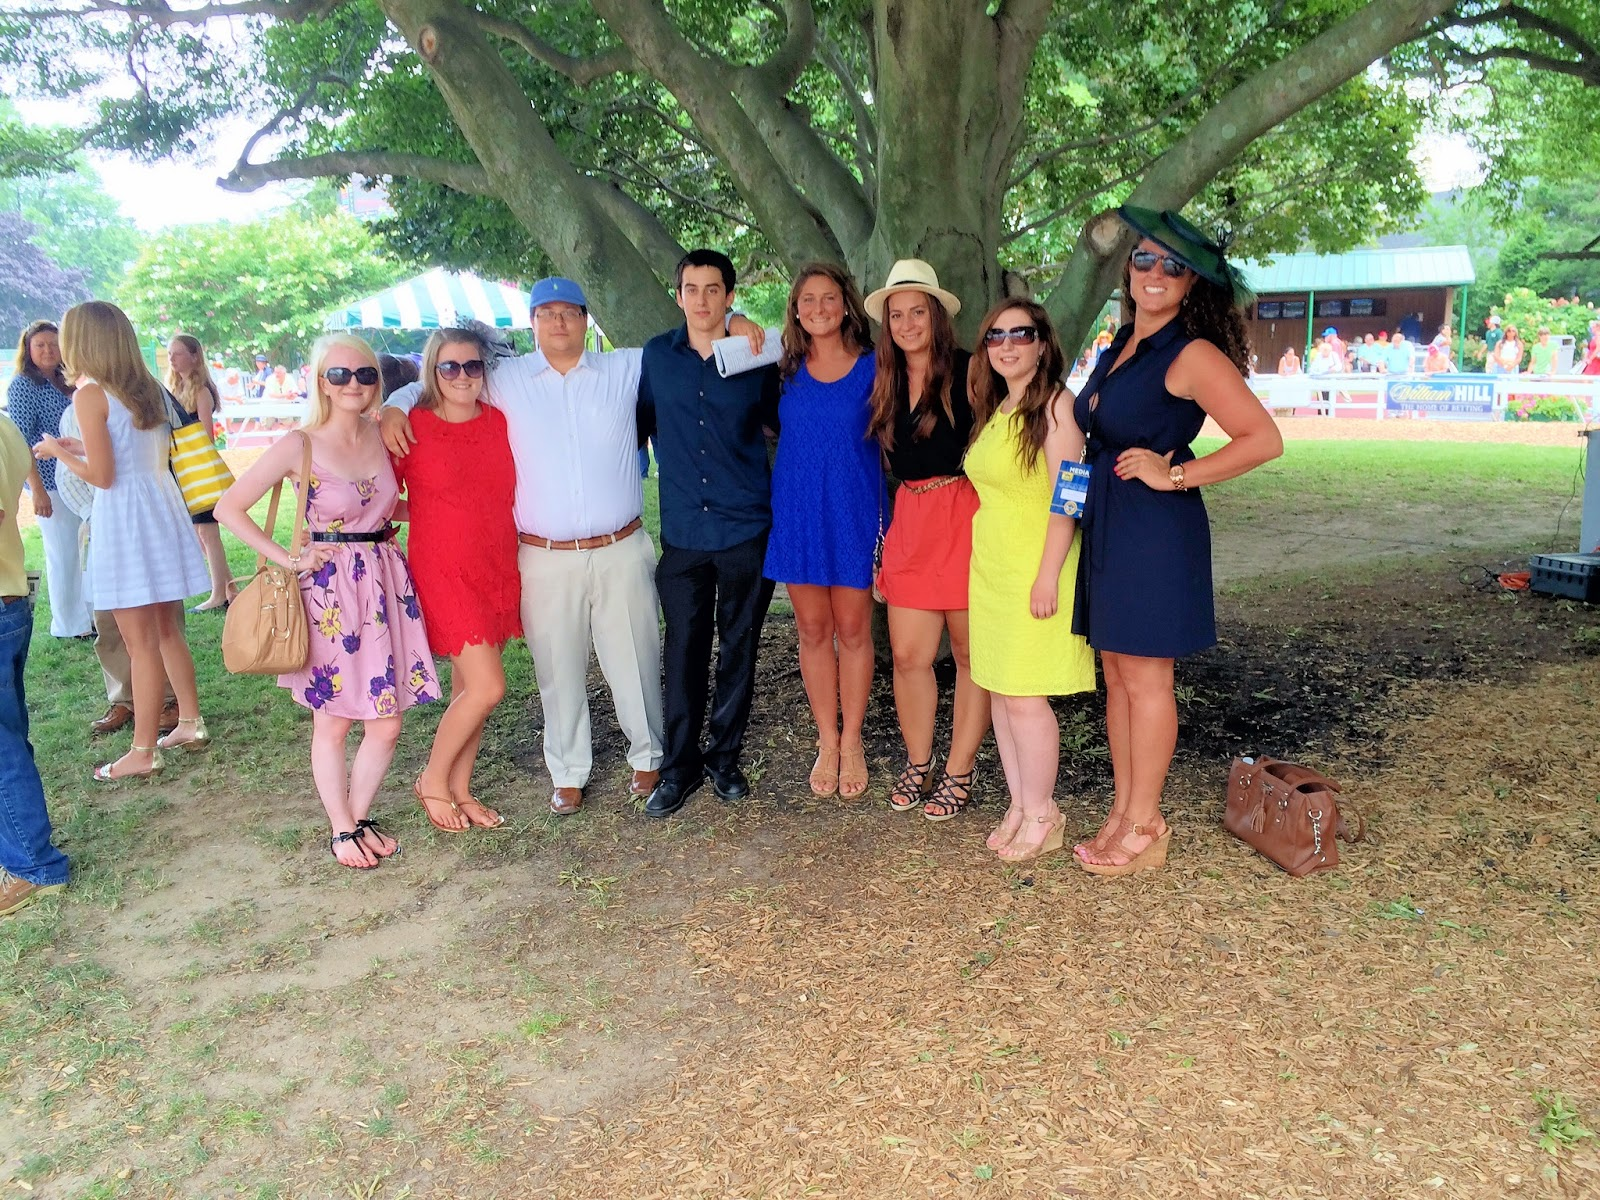 racetrack-fashion, style-at-the-racetrack, monmouth-park-racetrack, americas-best-racing-at-monmouth-park-racetrack, fashion-bloggers-at-the-racetrack